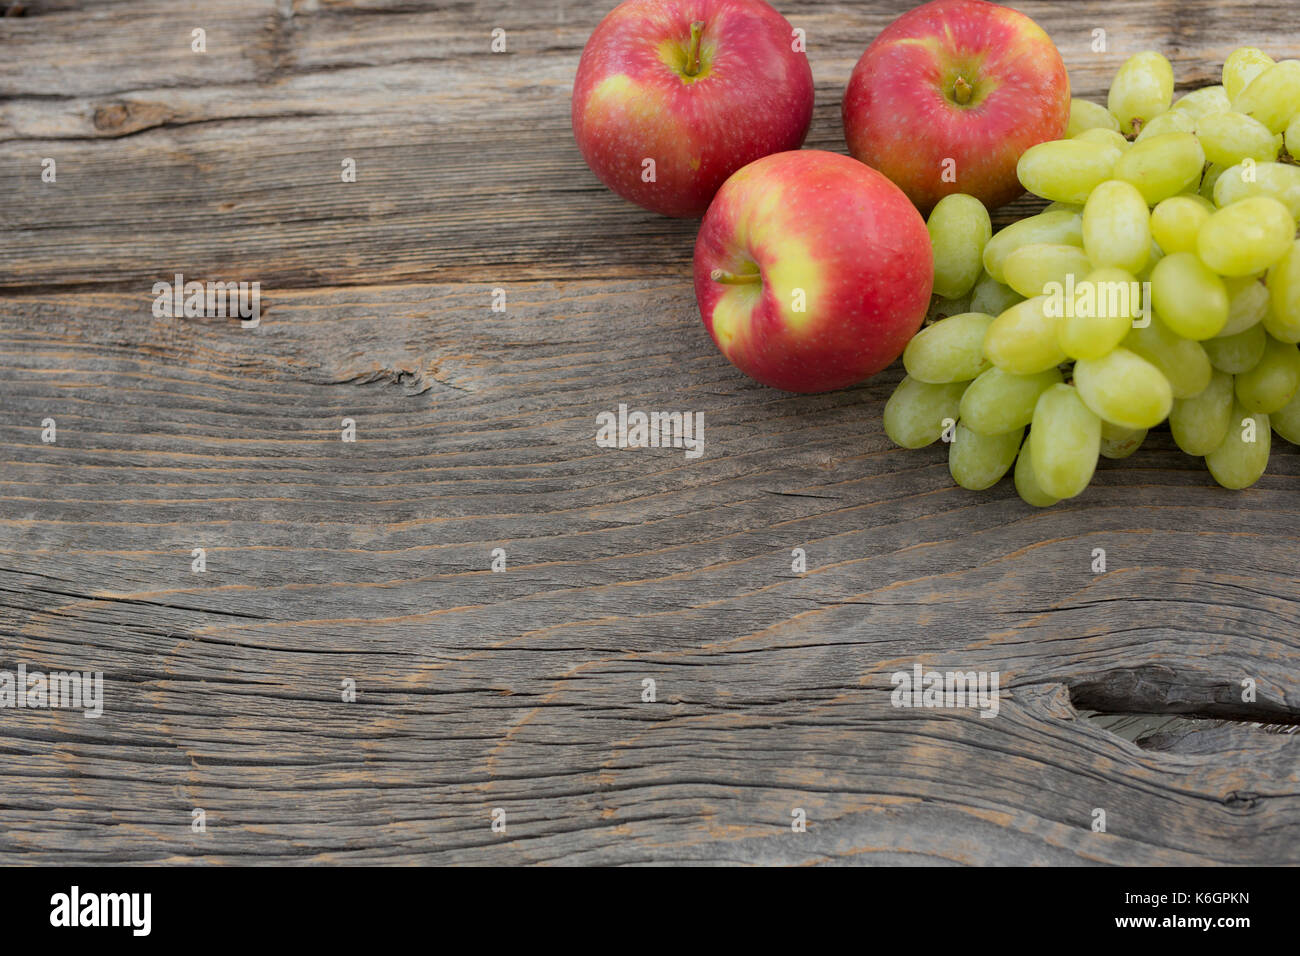 Season of apple picking and all kind of assessors are placed just for the occasion. Stock Photo